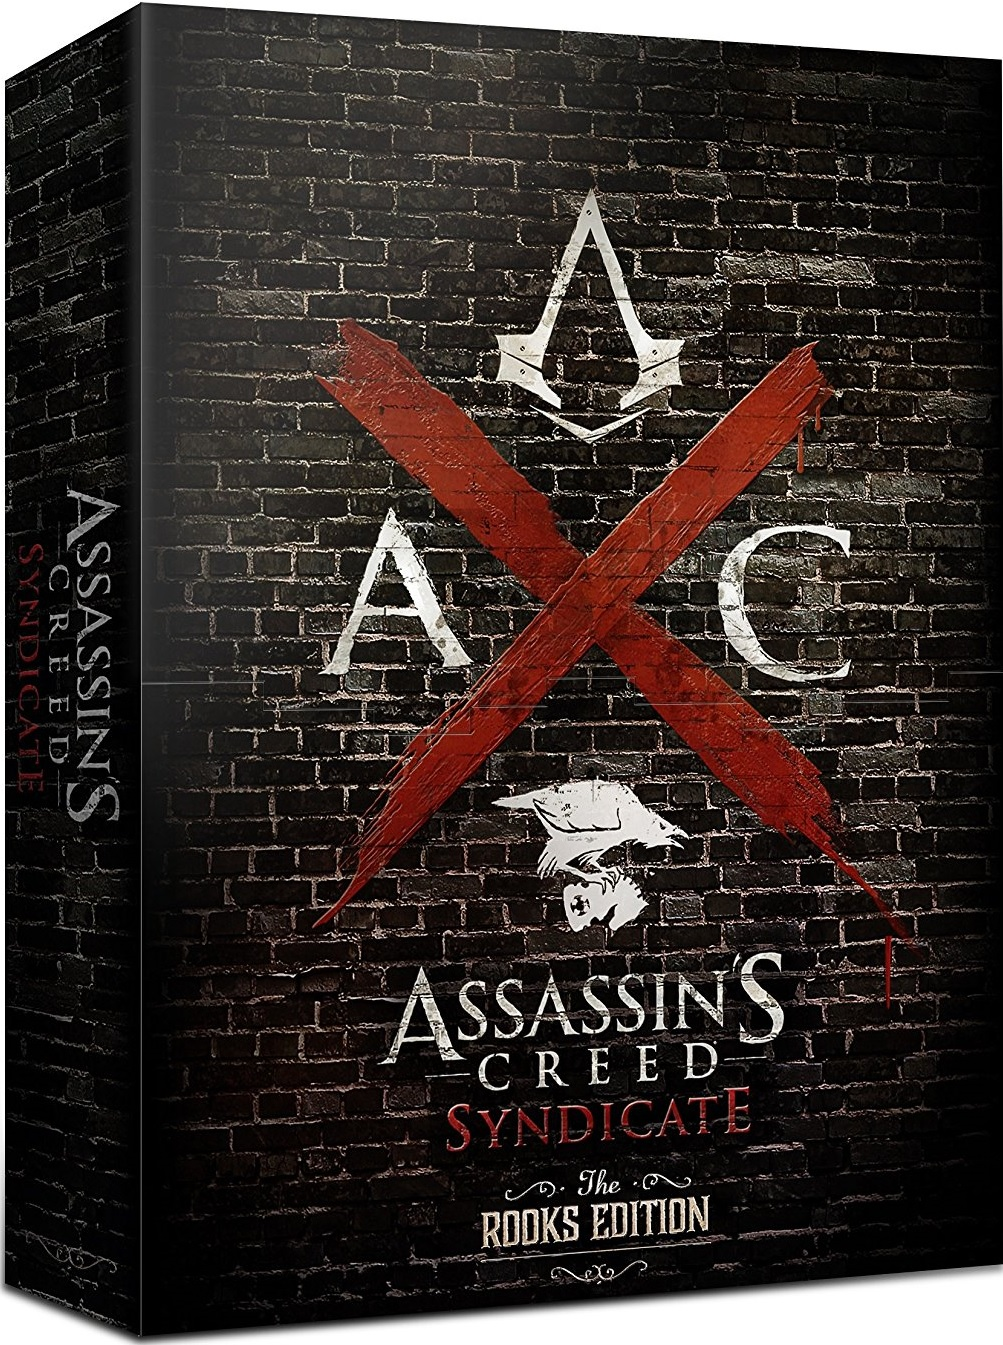 Assassins Creed Syndicate Rooks Edition (Magyar Felírattal)